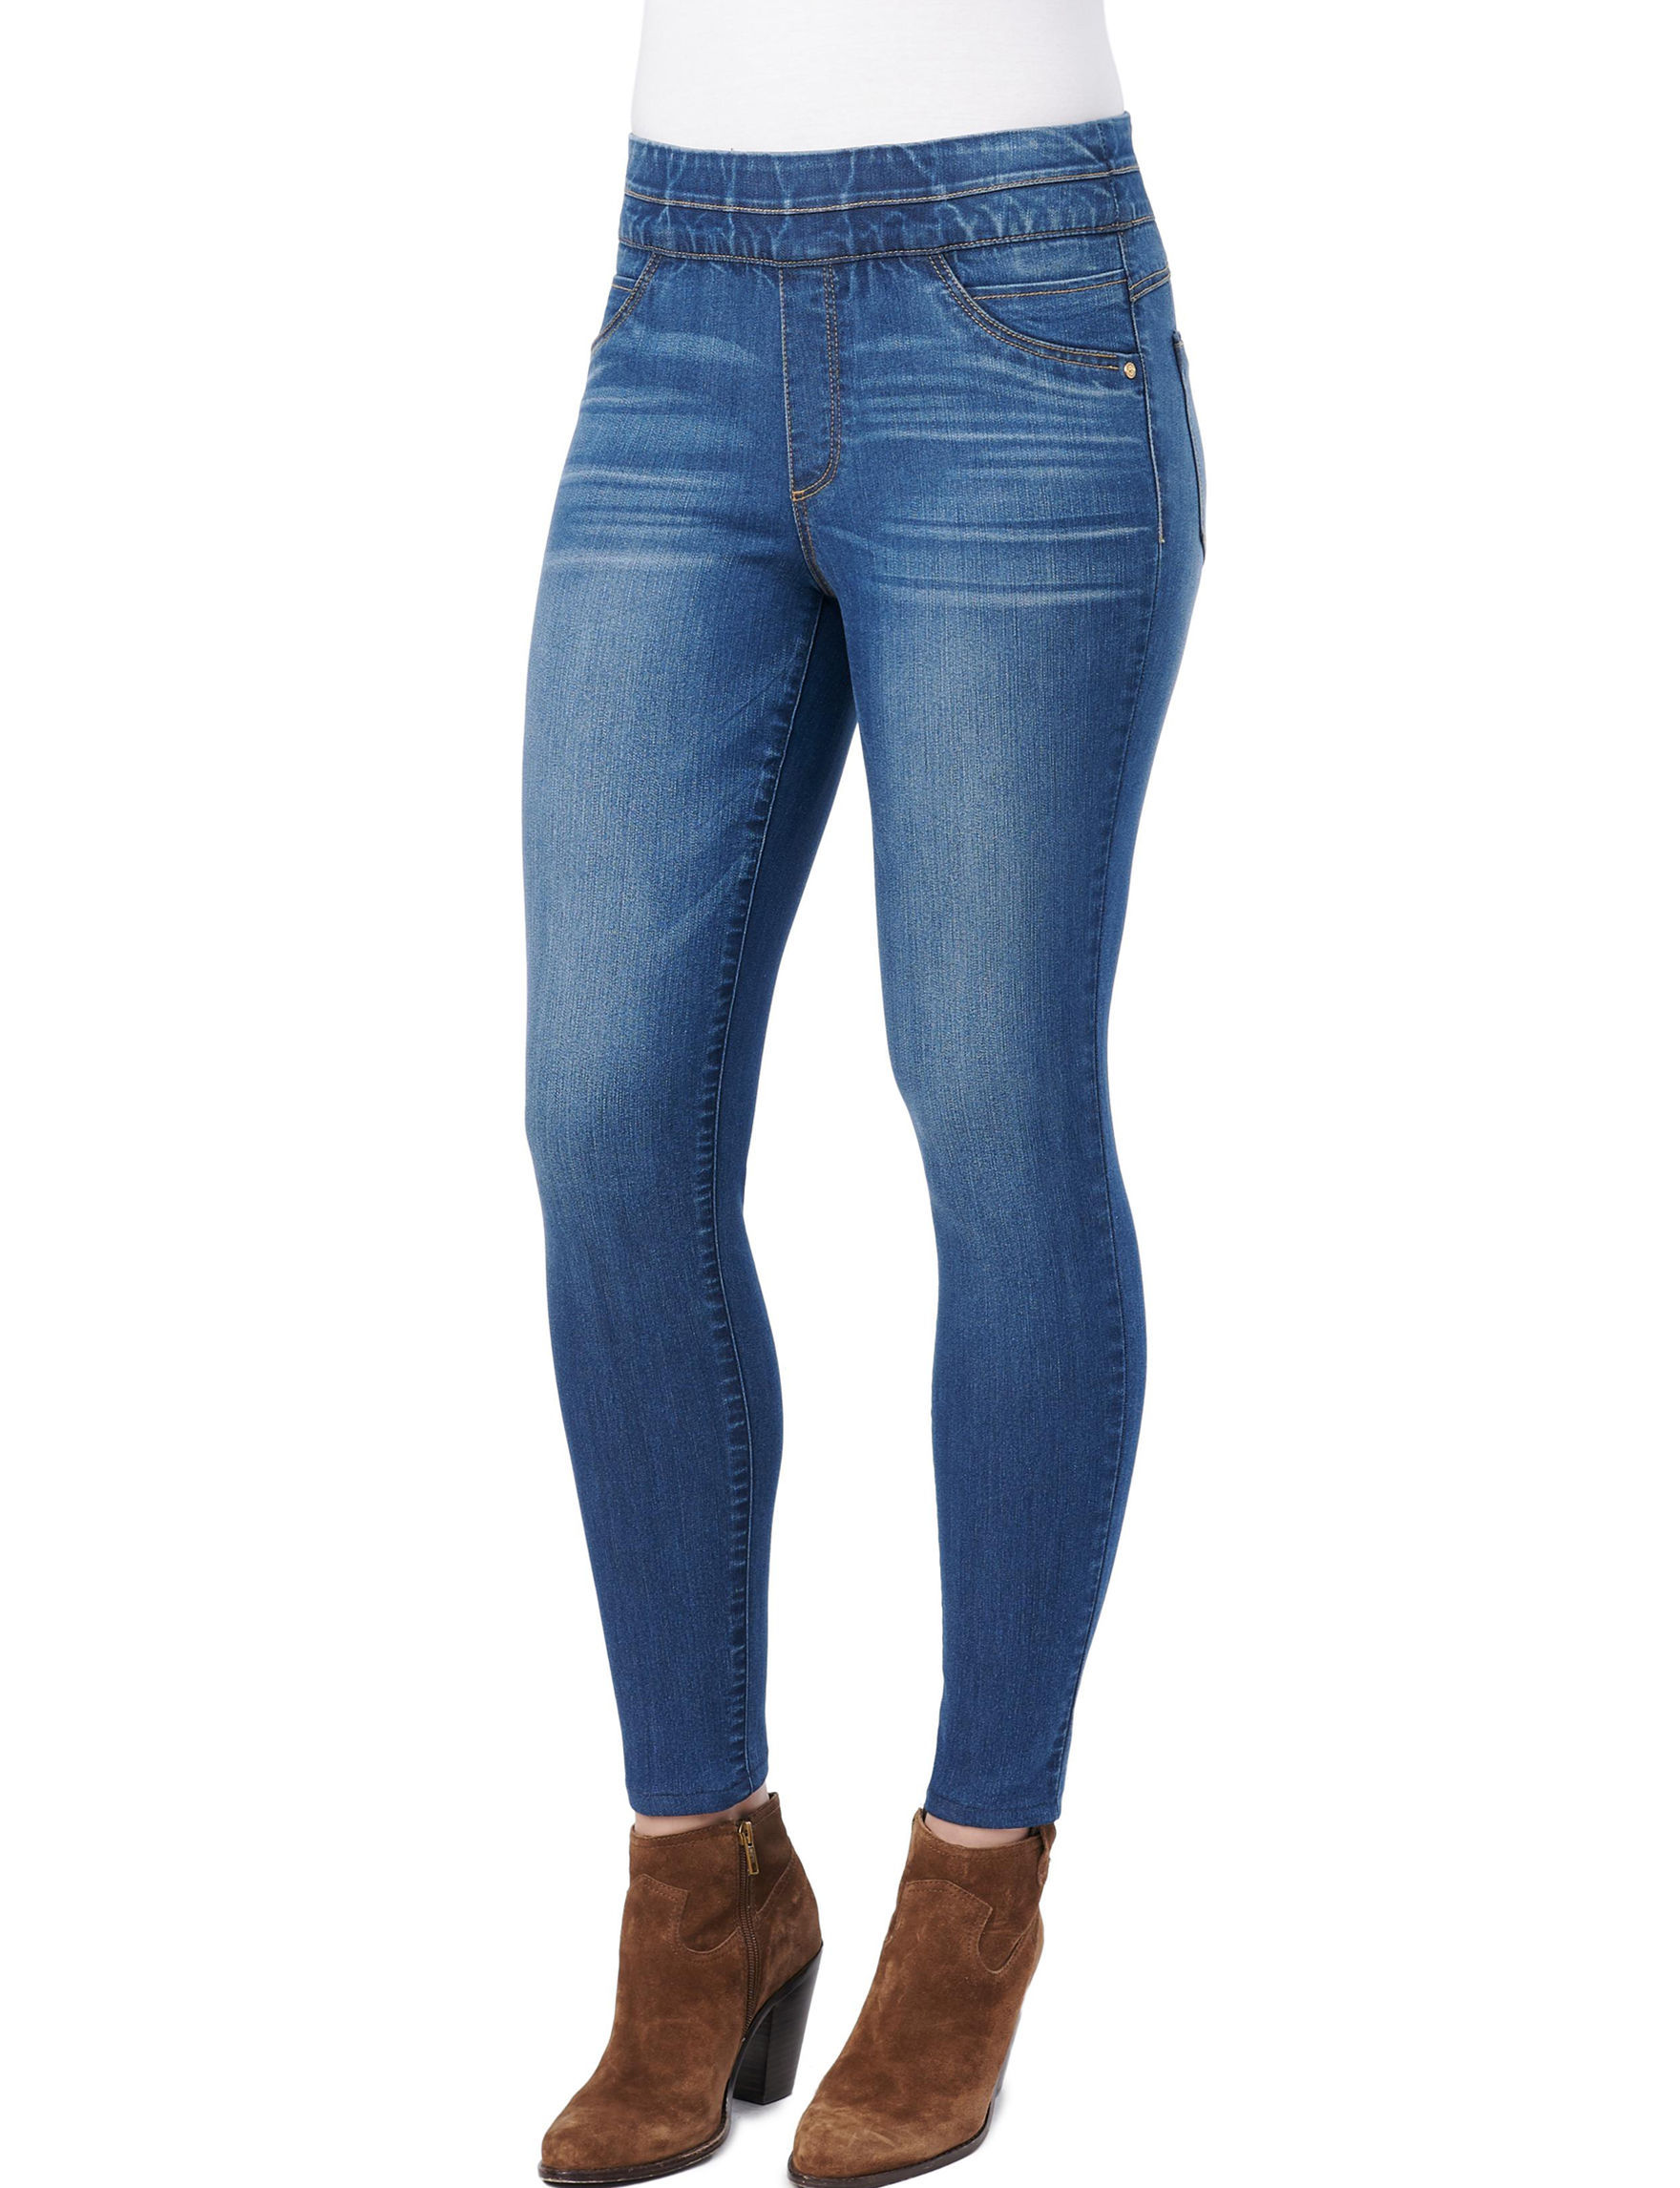 Democracy Blue Jeggings Skinny Stretch